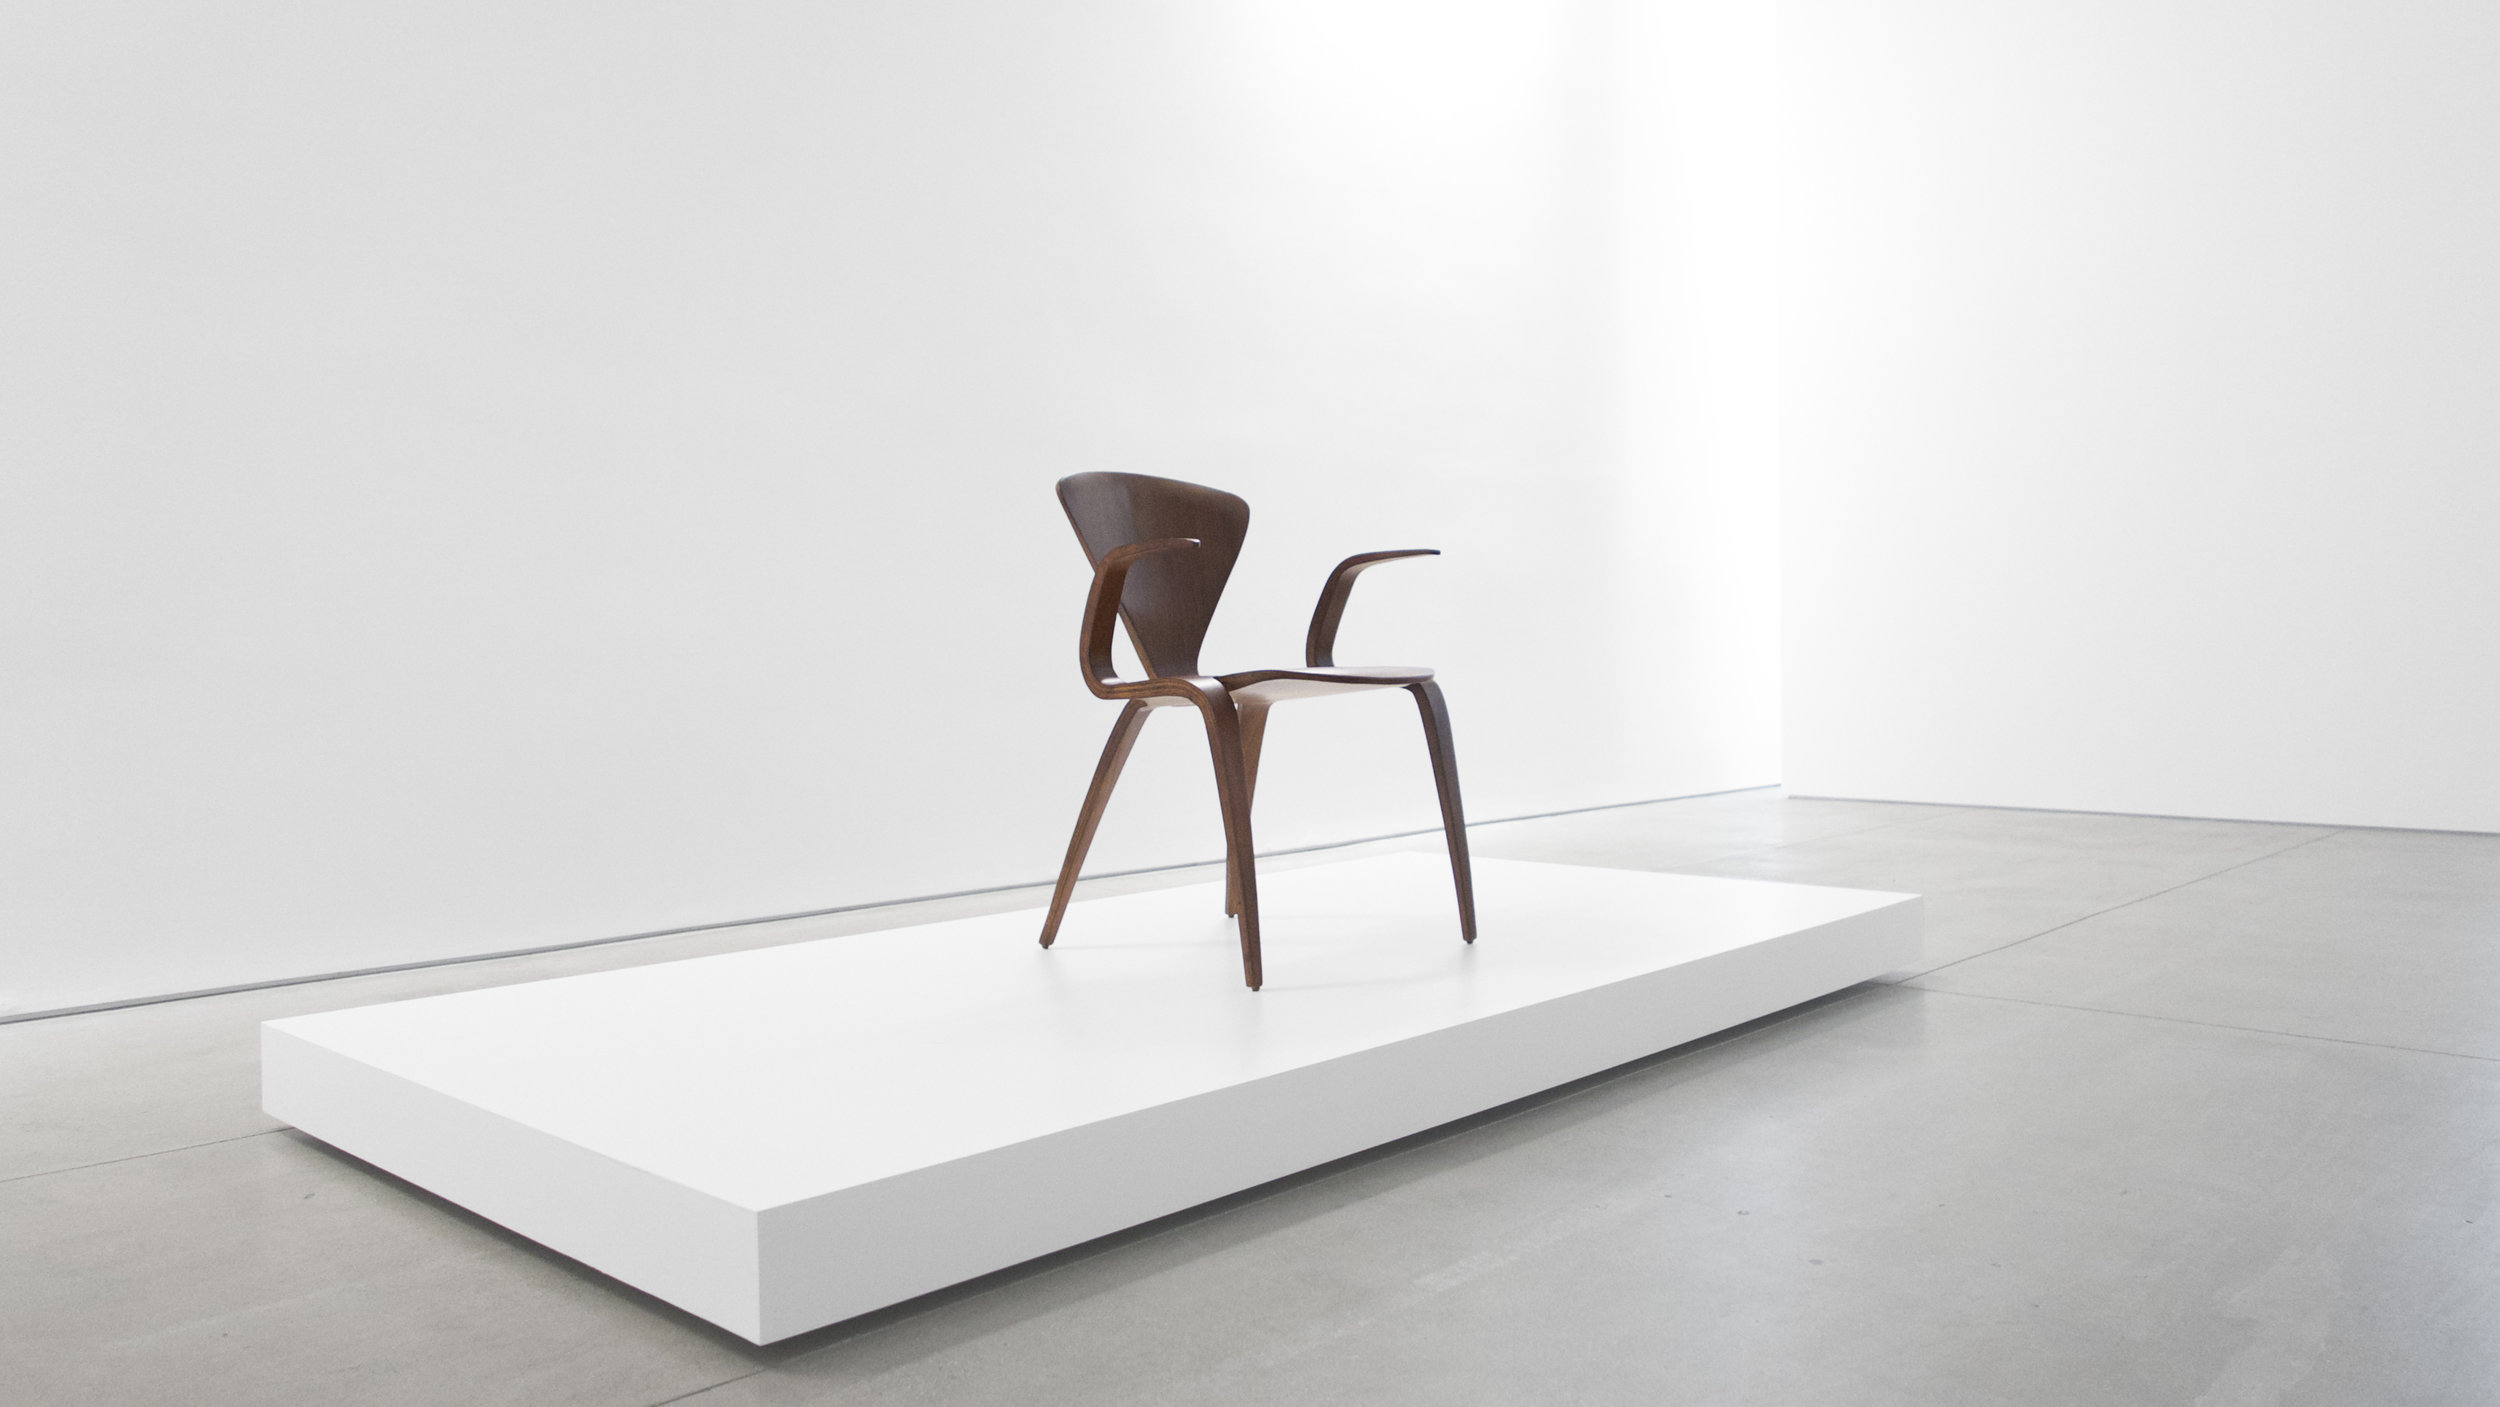 1. Norman Cherner, Rare Prototype Chair, c. 1950, walnut, 30.75H x 23W x 23D inches.jpg